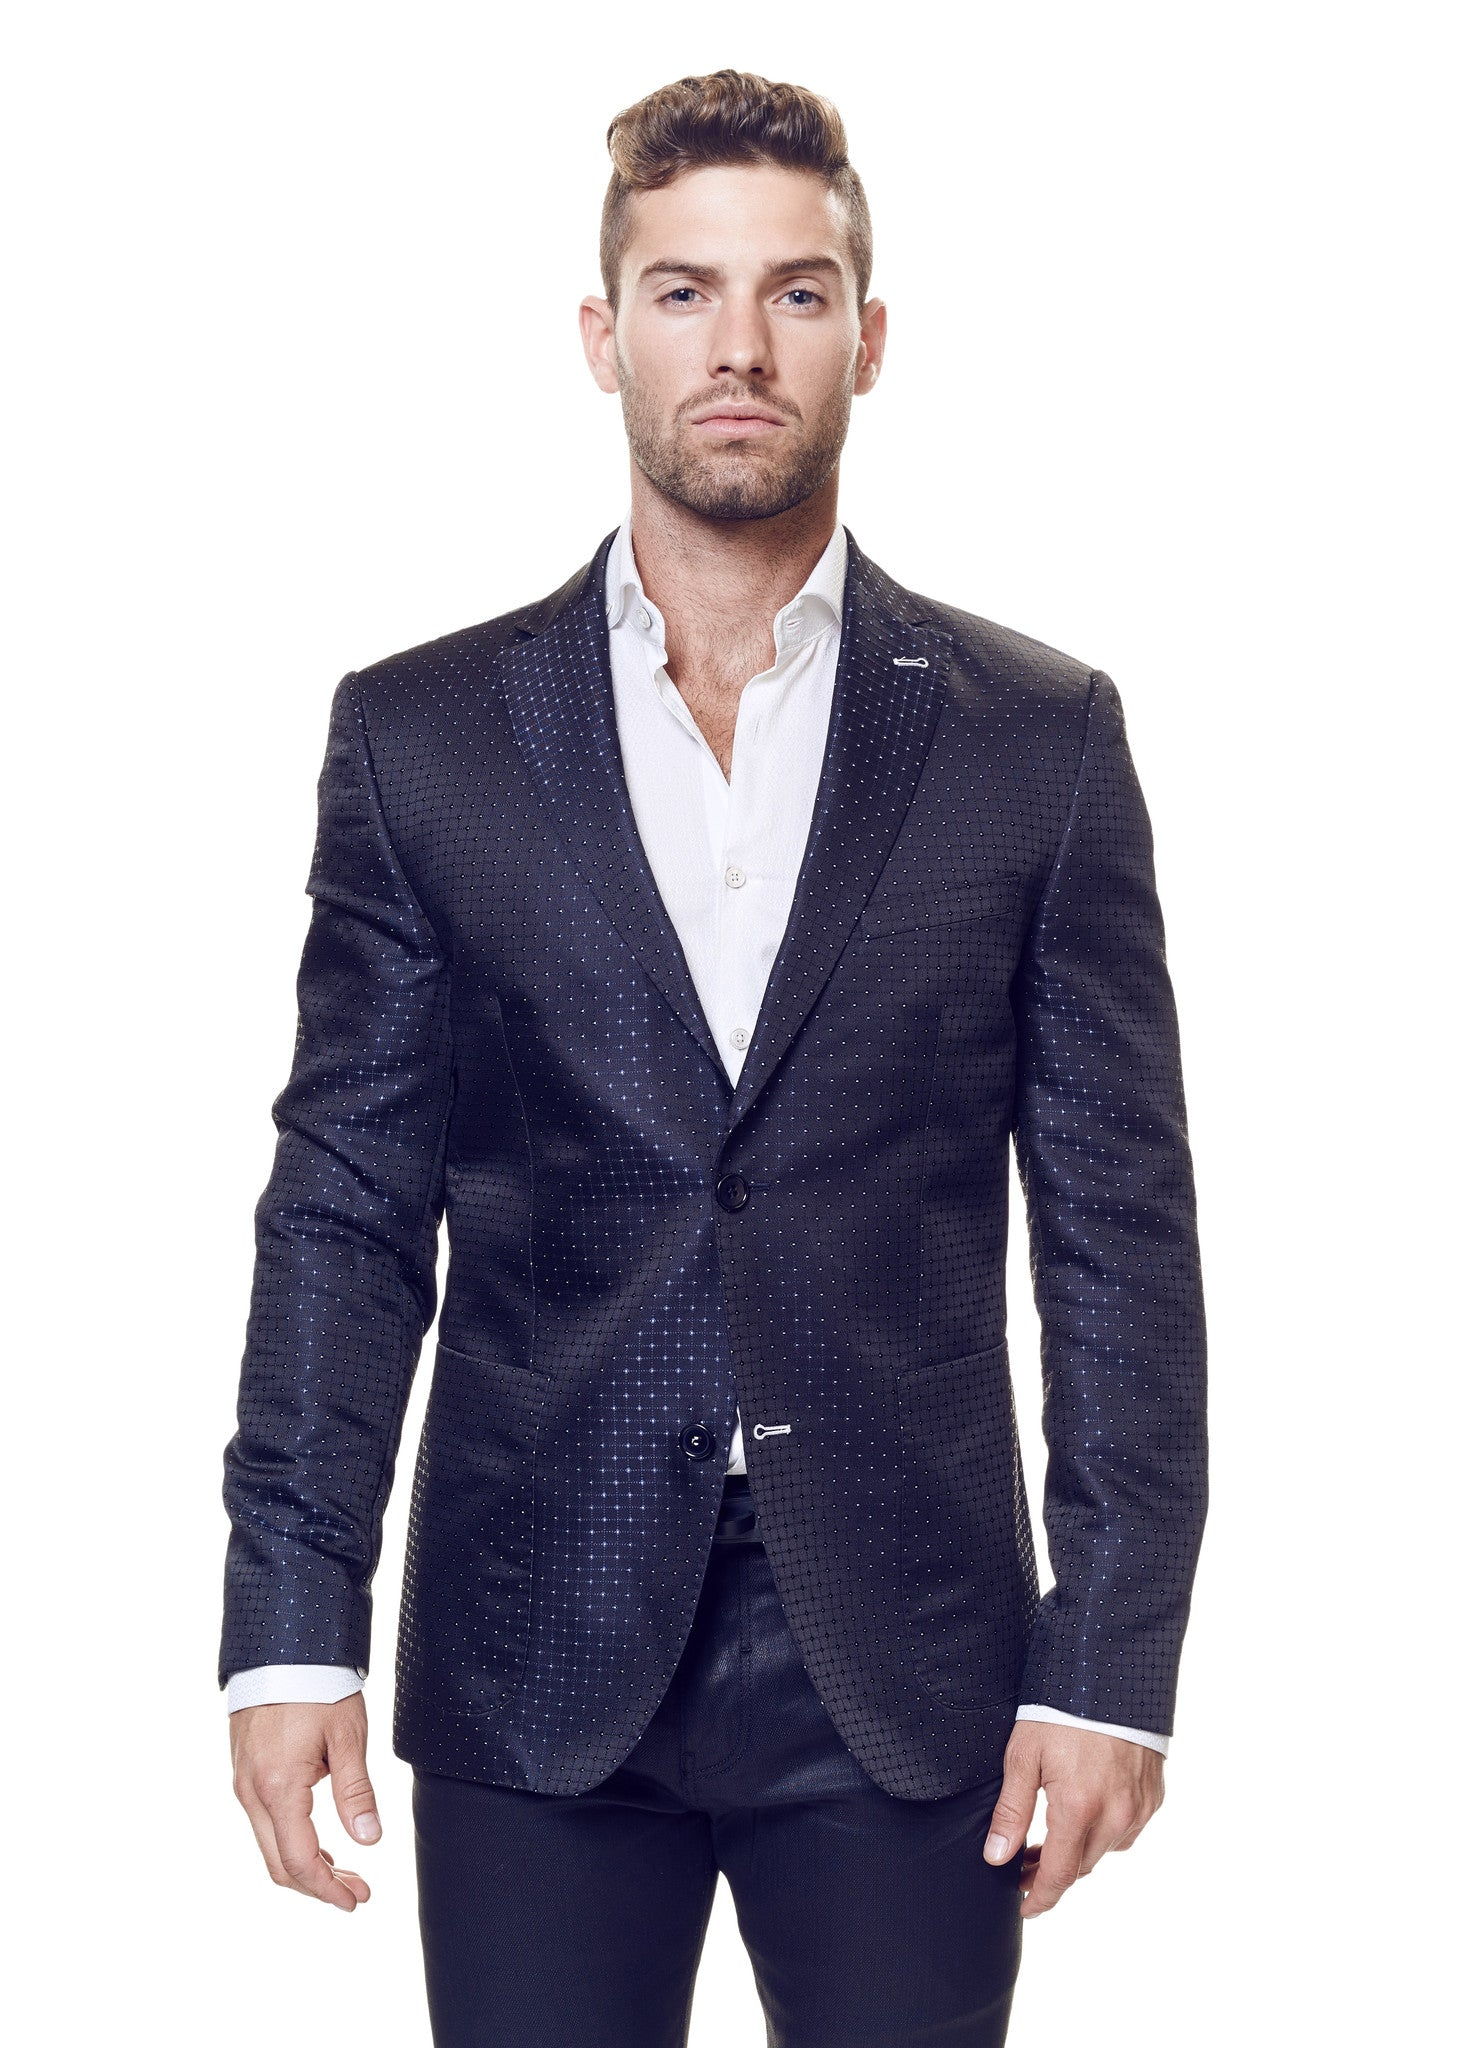 Blazer Checkmate 1 Navy White Dot - Slim  - 2